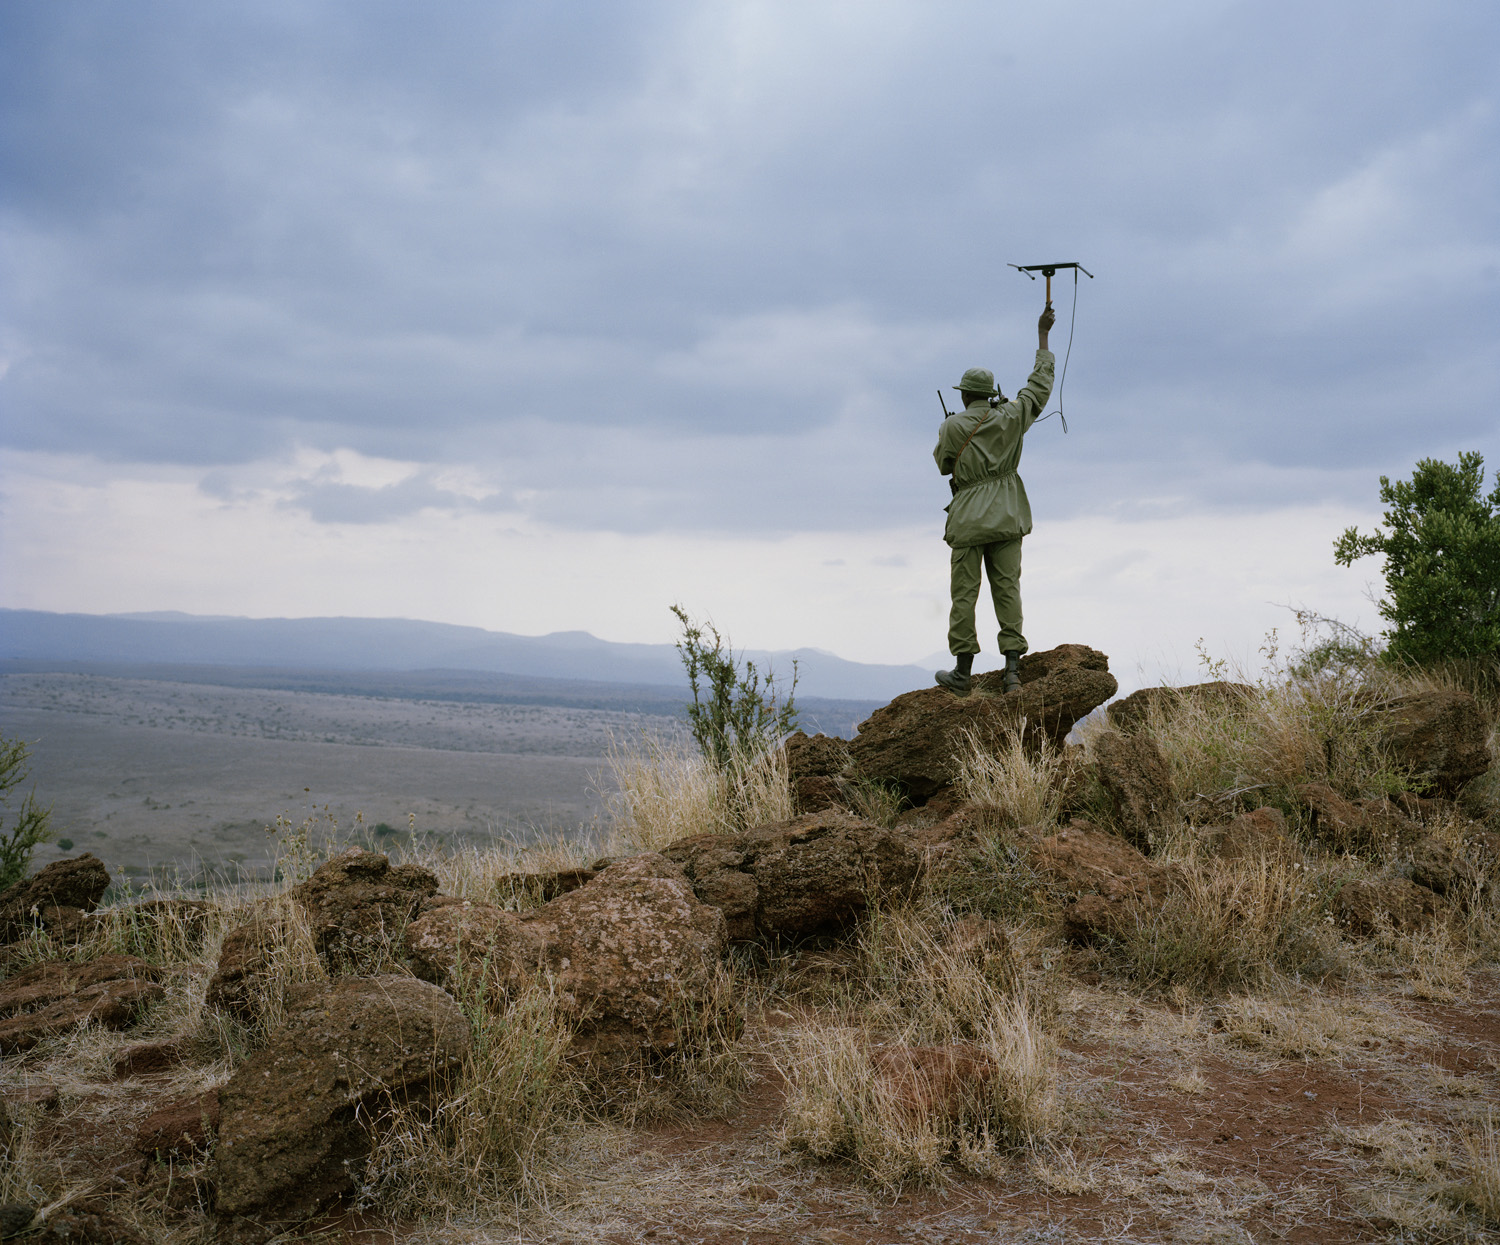 Monitoring a lion's movements in the Lewa Wildlife Conservancy, northern Kenya.